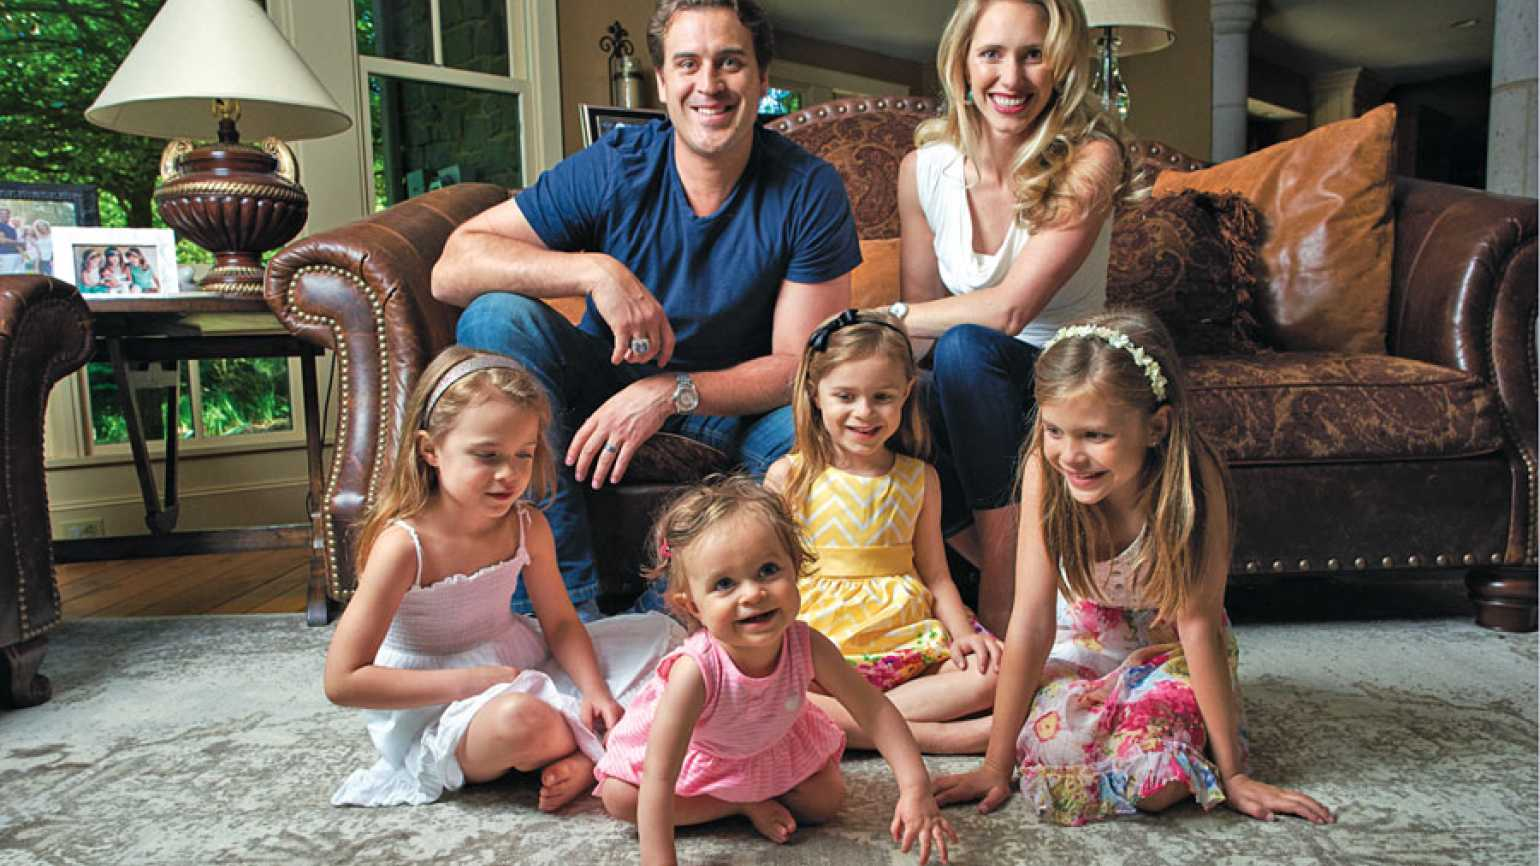 Ben and Karyn with their daughters, Katriel, Haven, Amy Joan and Elleora